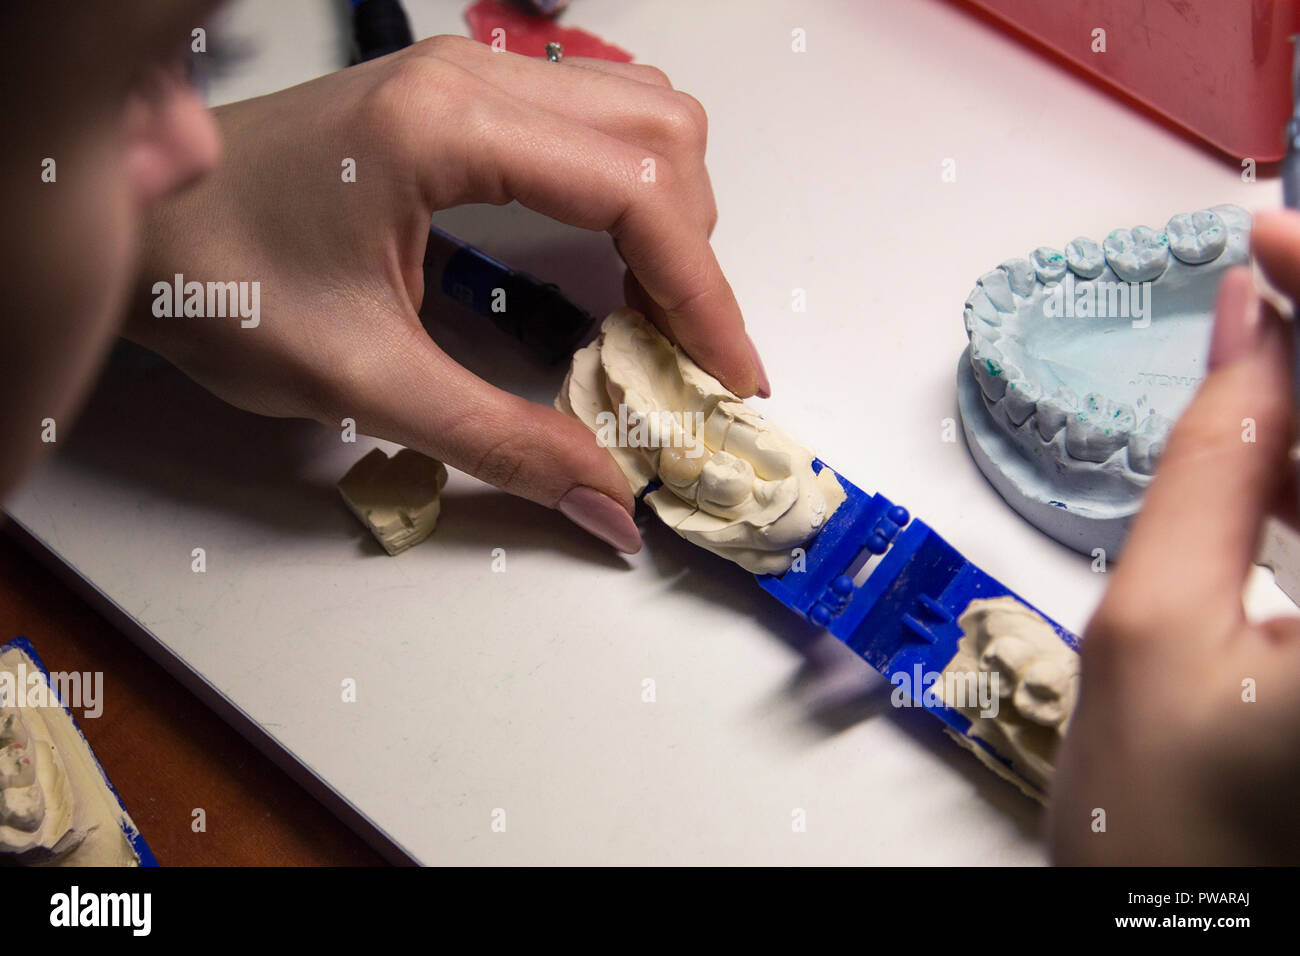 Dental prosthesis, artificial tooth, prosthetic, hands working on the denture - Stock Image